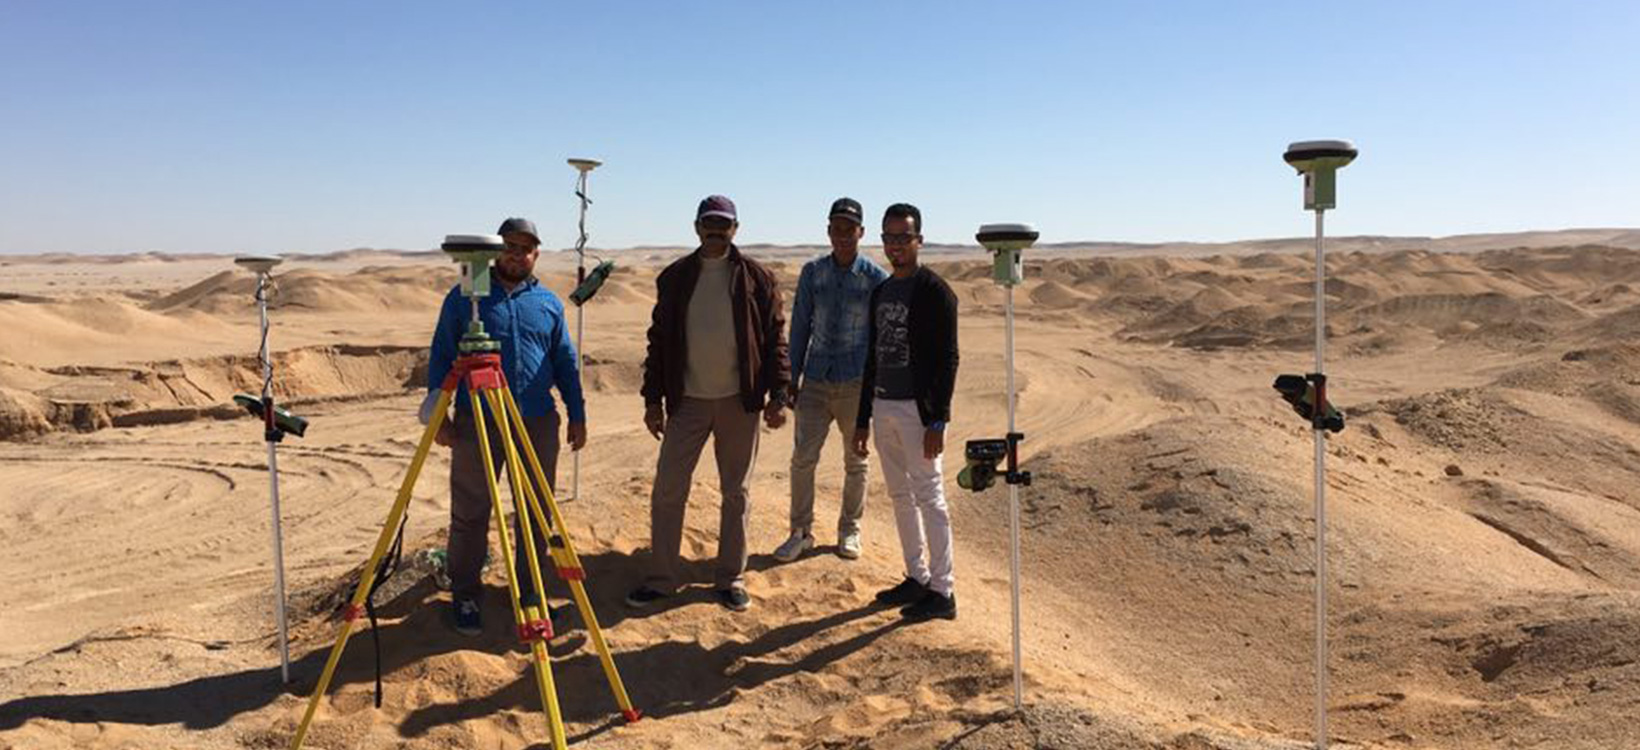 GNSS in the desert